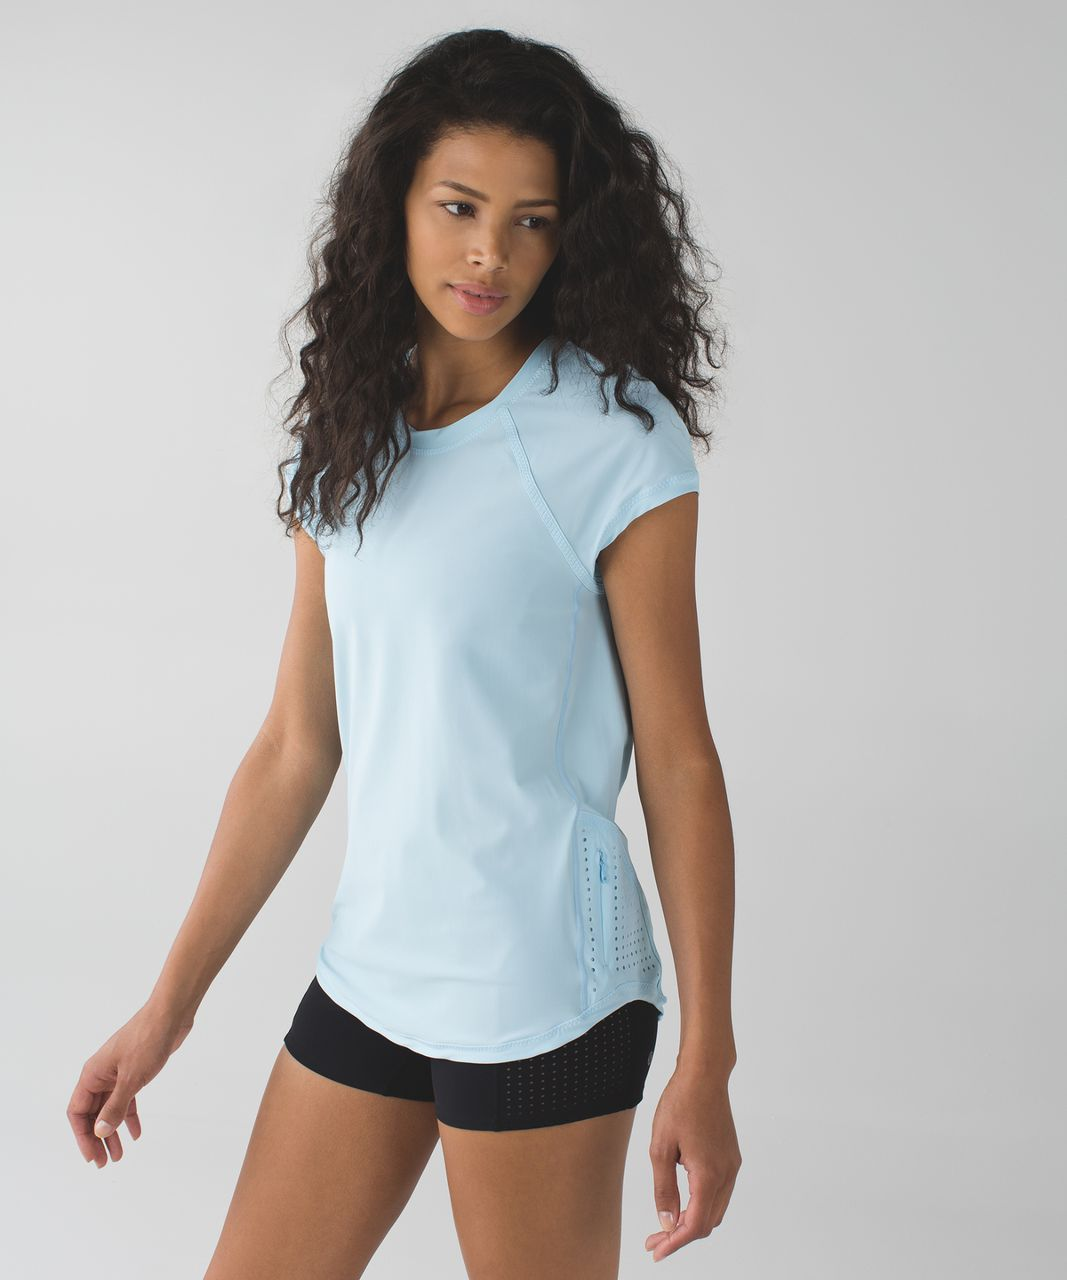 Lululemon Vent It Tee - Caspian Blue